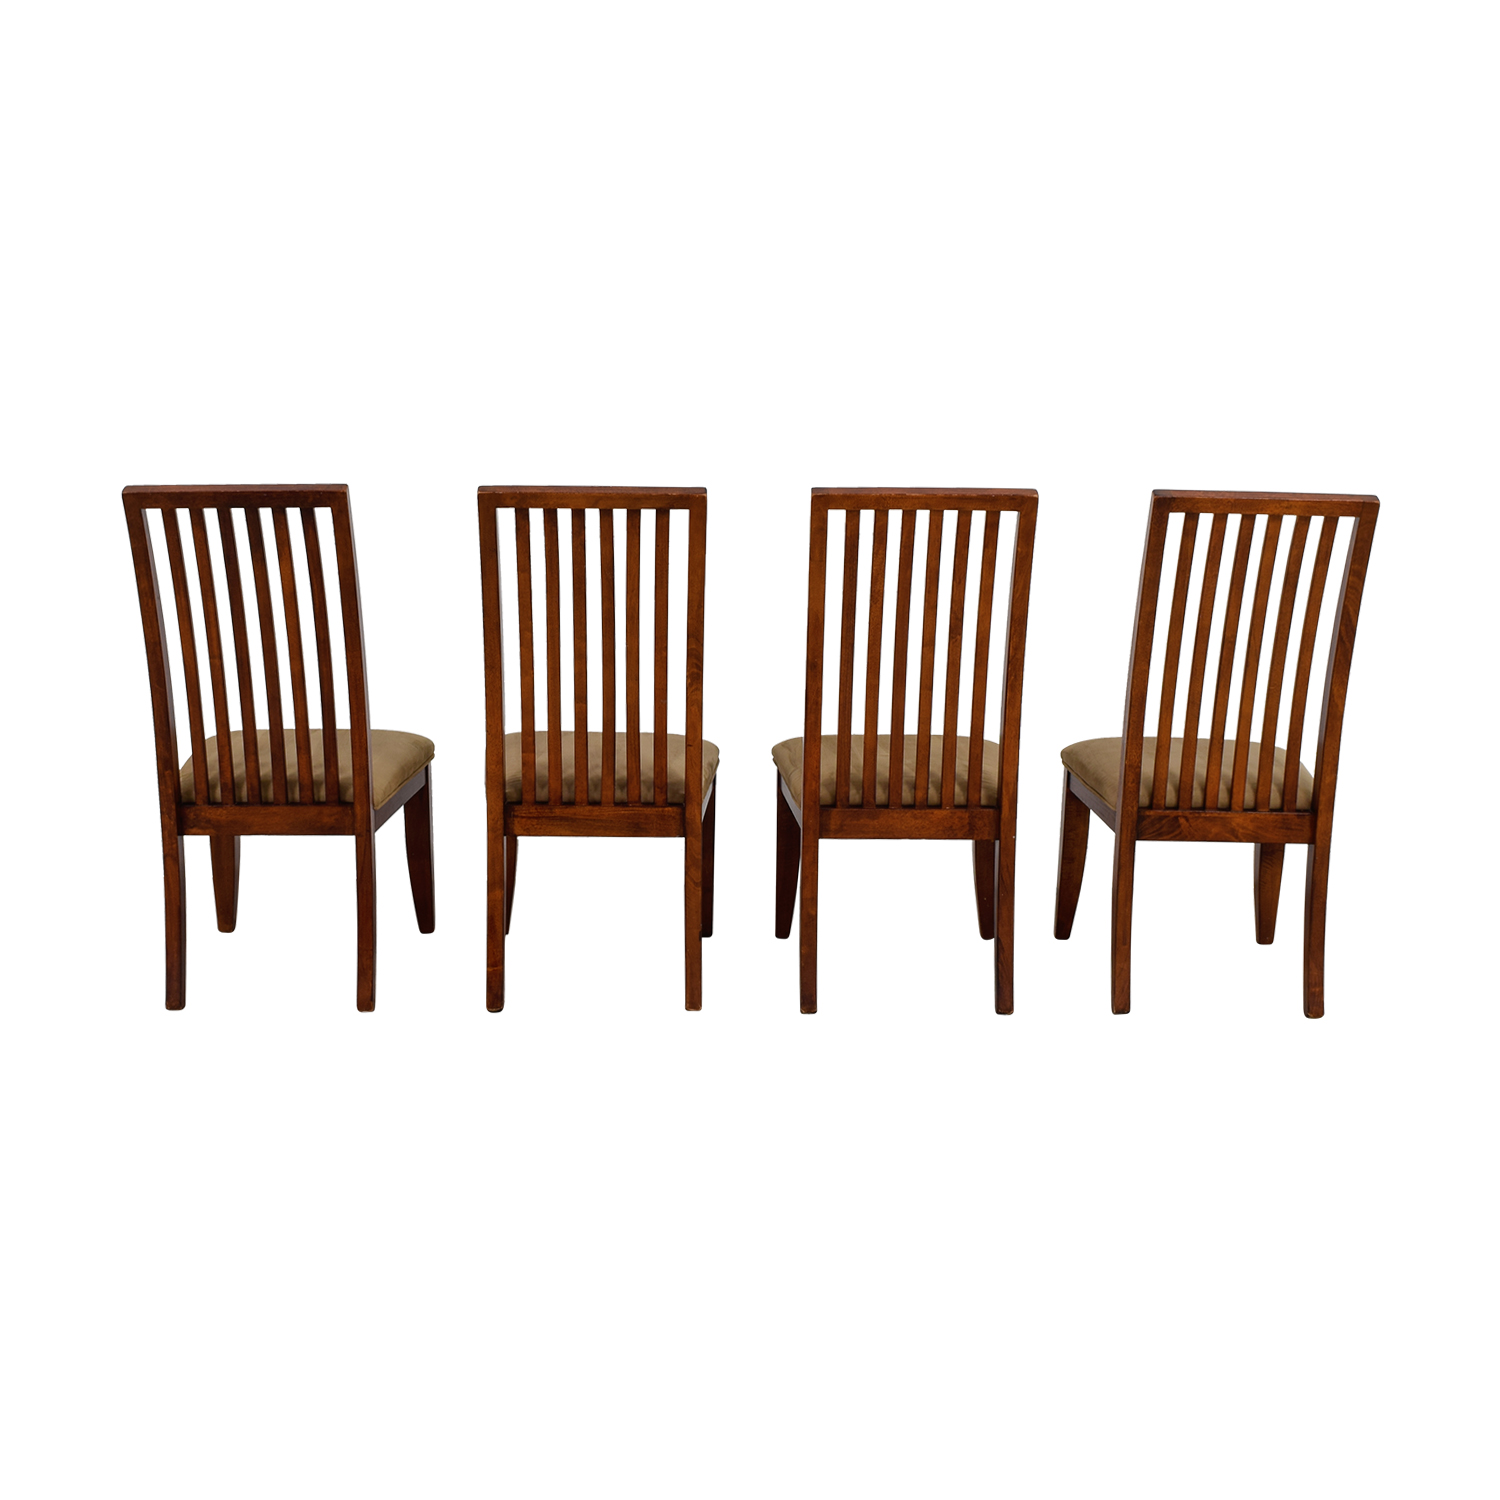 macys dining chairs ergonomic chair newcastle used for sale